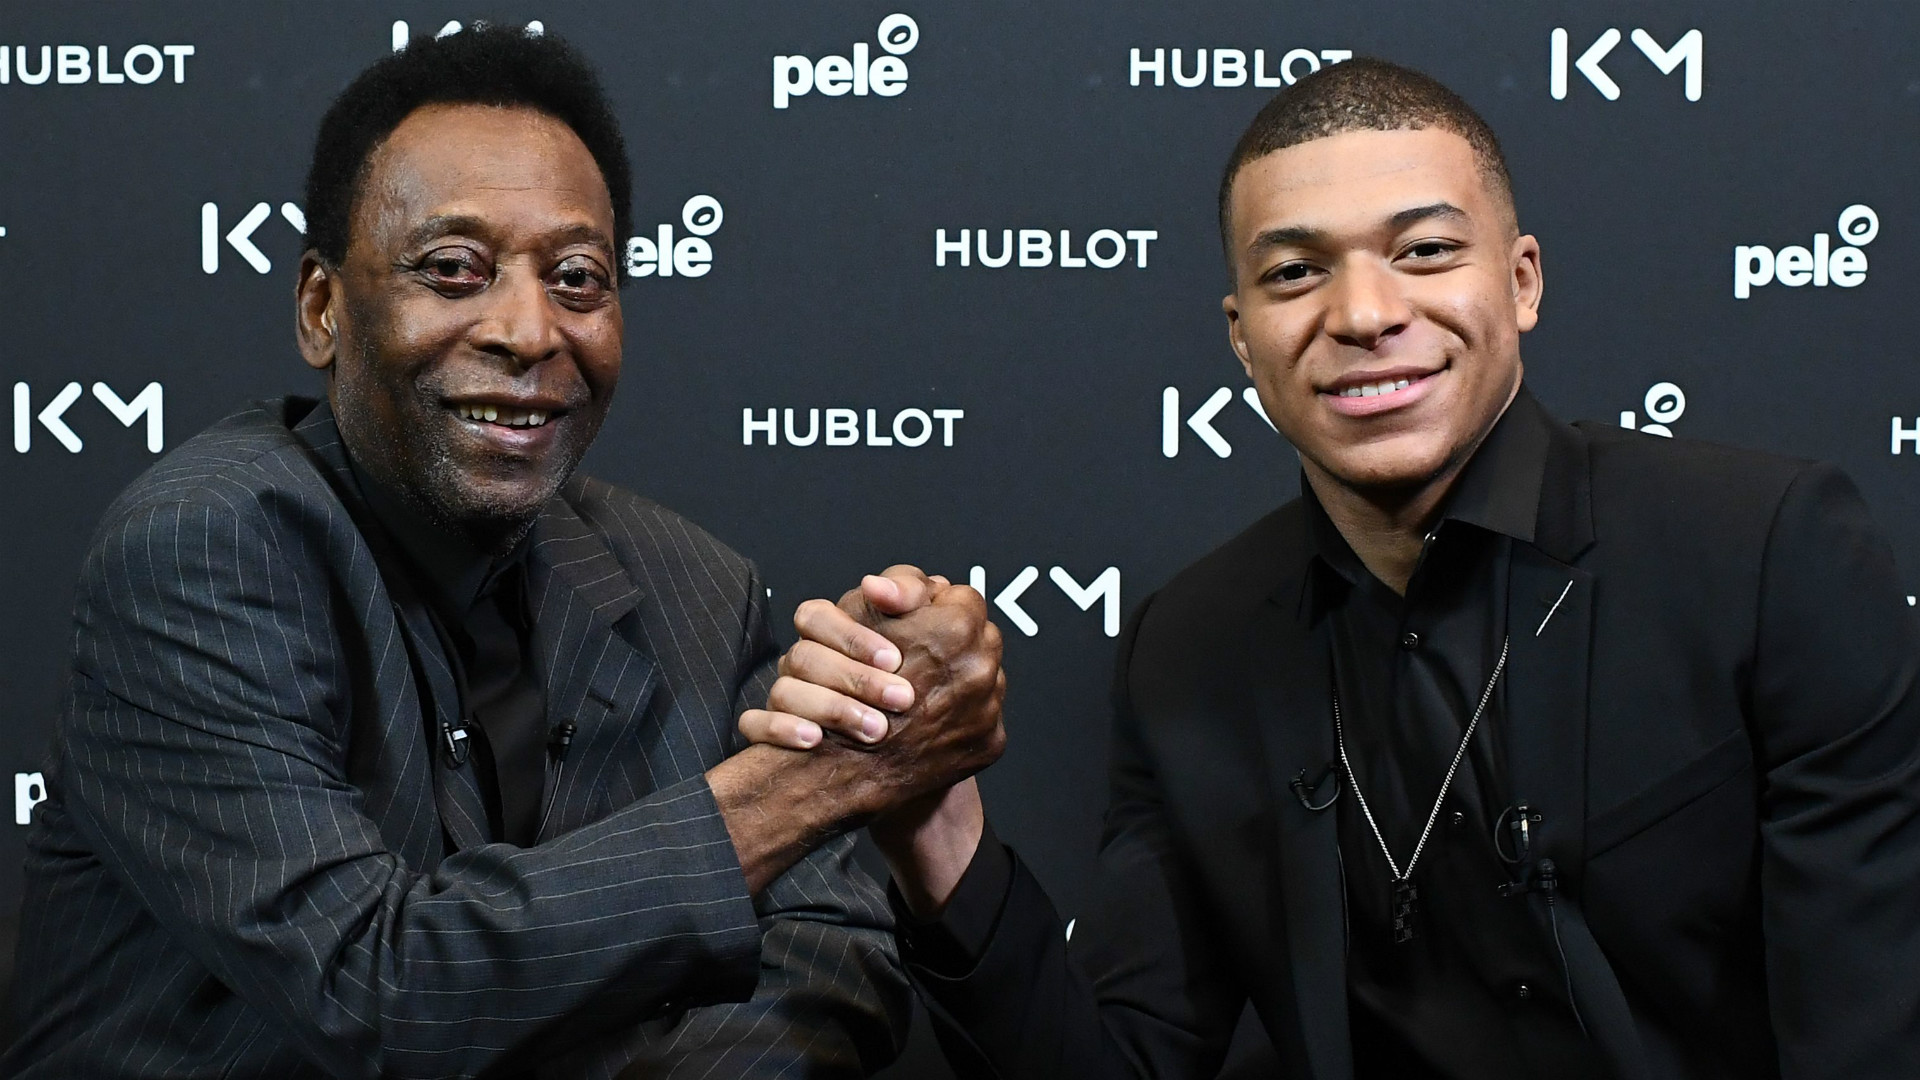 Pele hospitalised in Paris after Mbappe's visit